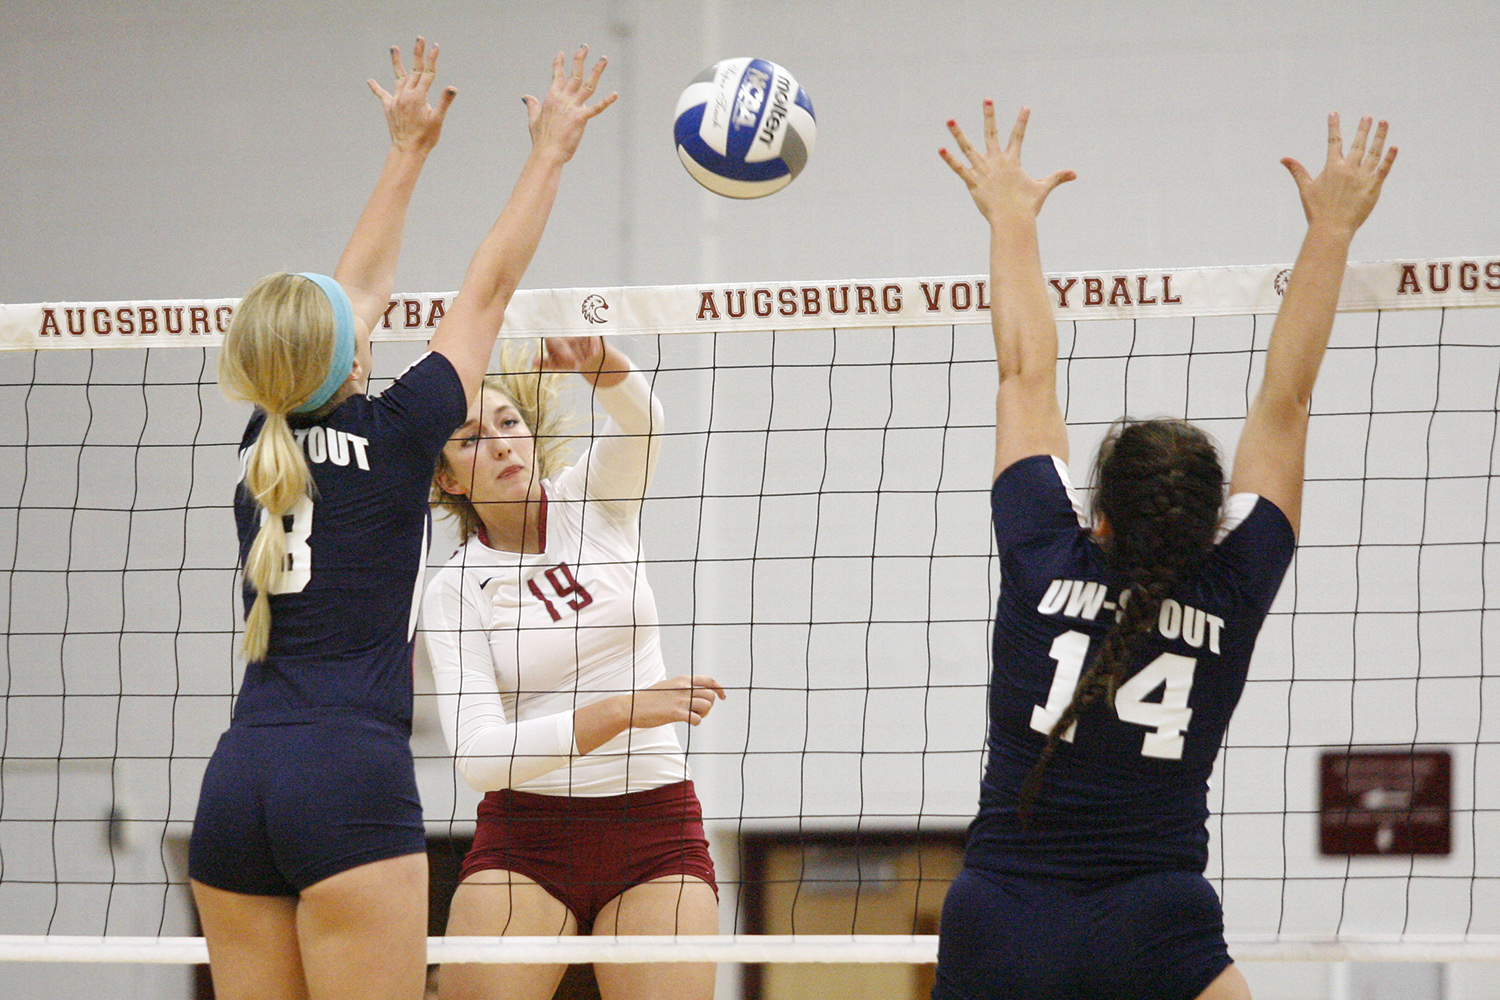 Augsburg volleyball player Ashley Peper (19) spikes against UW-Stout's Becky Bradshaw (8) and Ashley Pratt (14) in the first set of a match between UW-Stout on September 11, 2014. Augsburg won 3-2 (25-12, 15-25, 25-18, 18-25, 15-9). Peper had 14 kills.